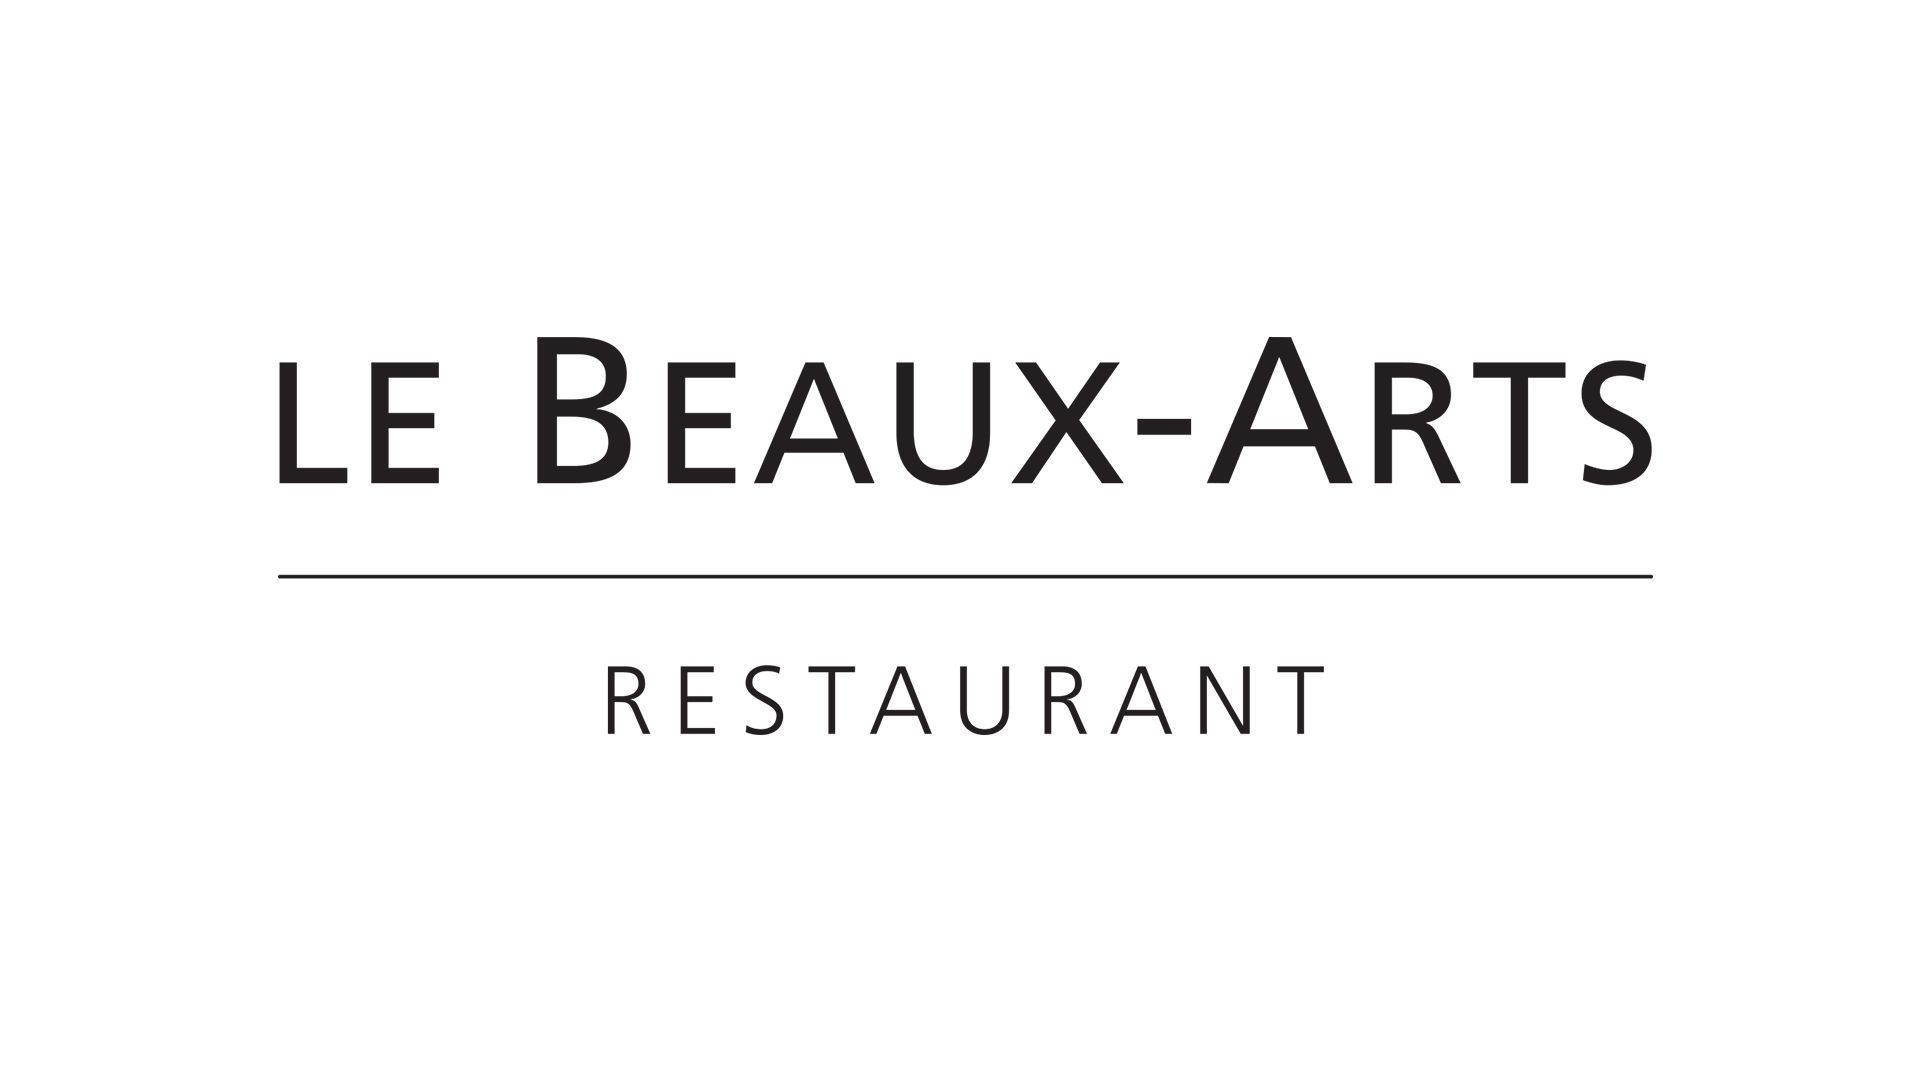 Le Beaux-Arts Restaurant